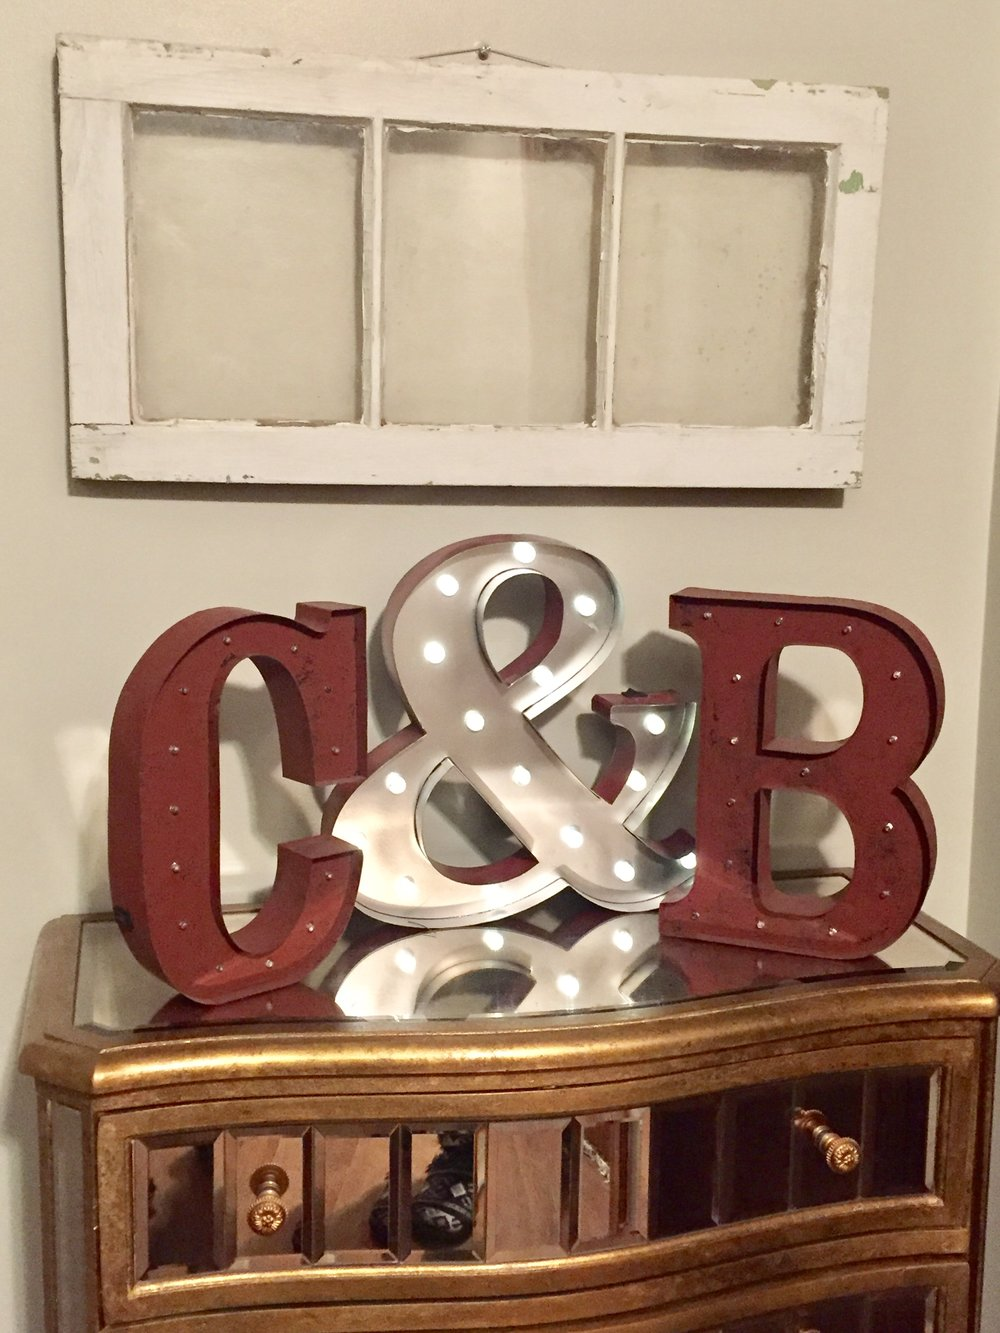 c-and-b-letters.jpg